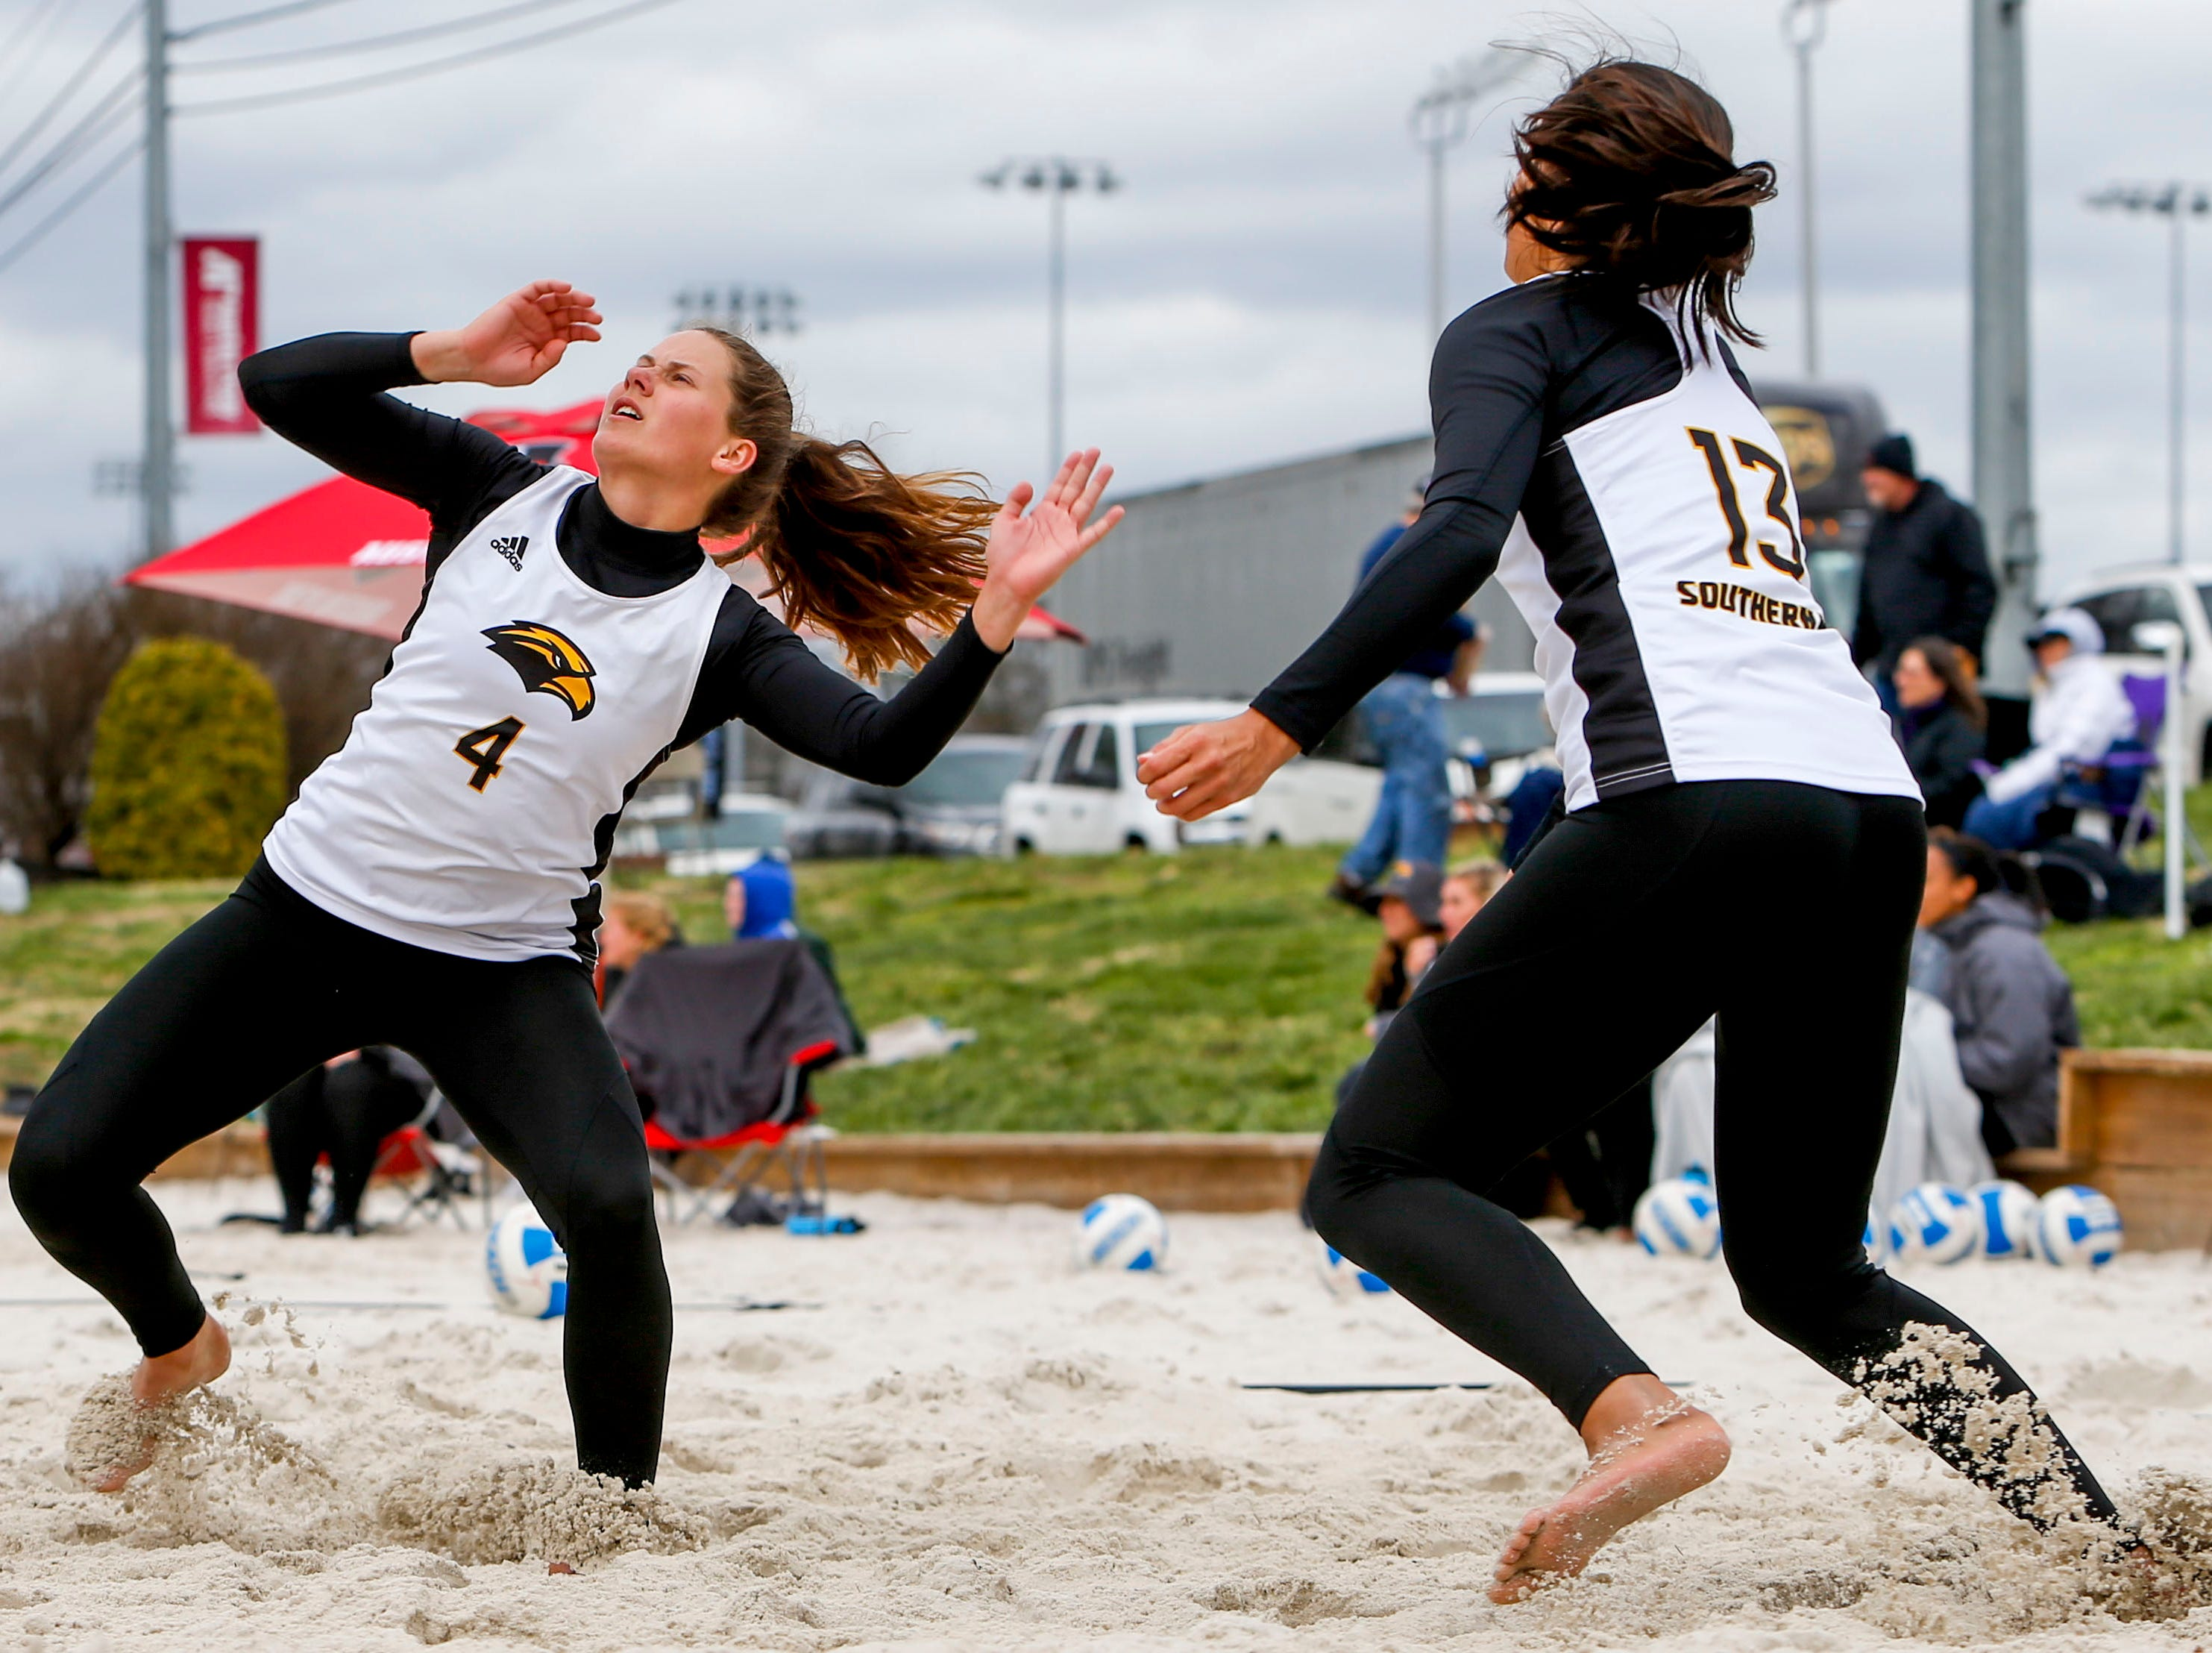 Southern Miss players move to return a serve at Winfield Dunn Center lawn in Clarksville, Tenn., on Friday, March 15, 2019.